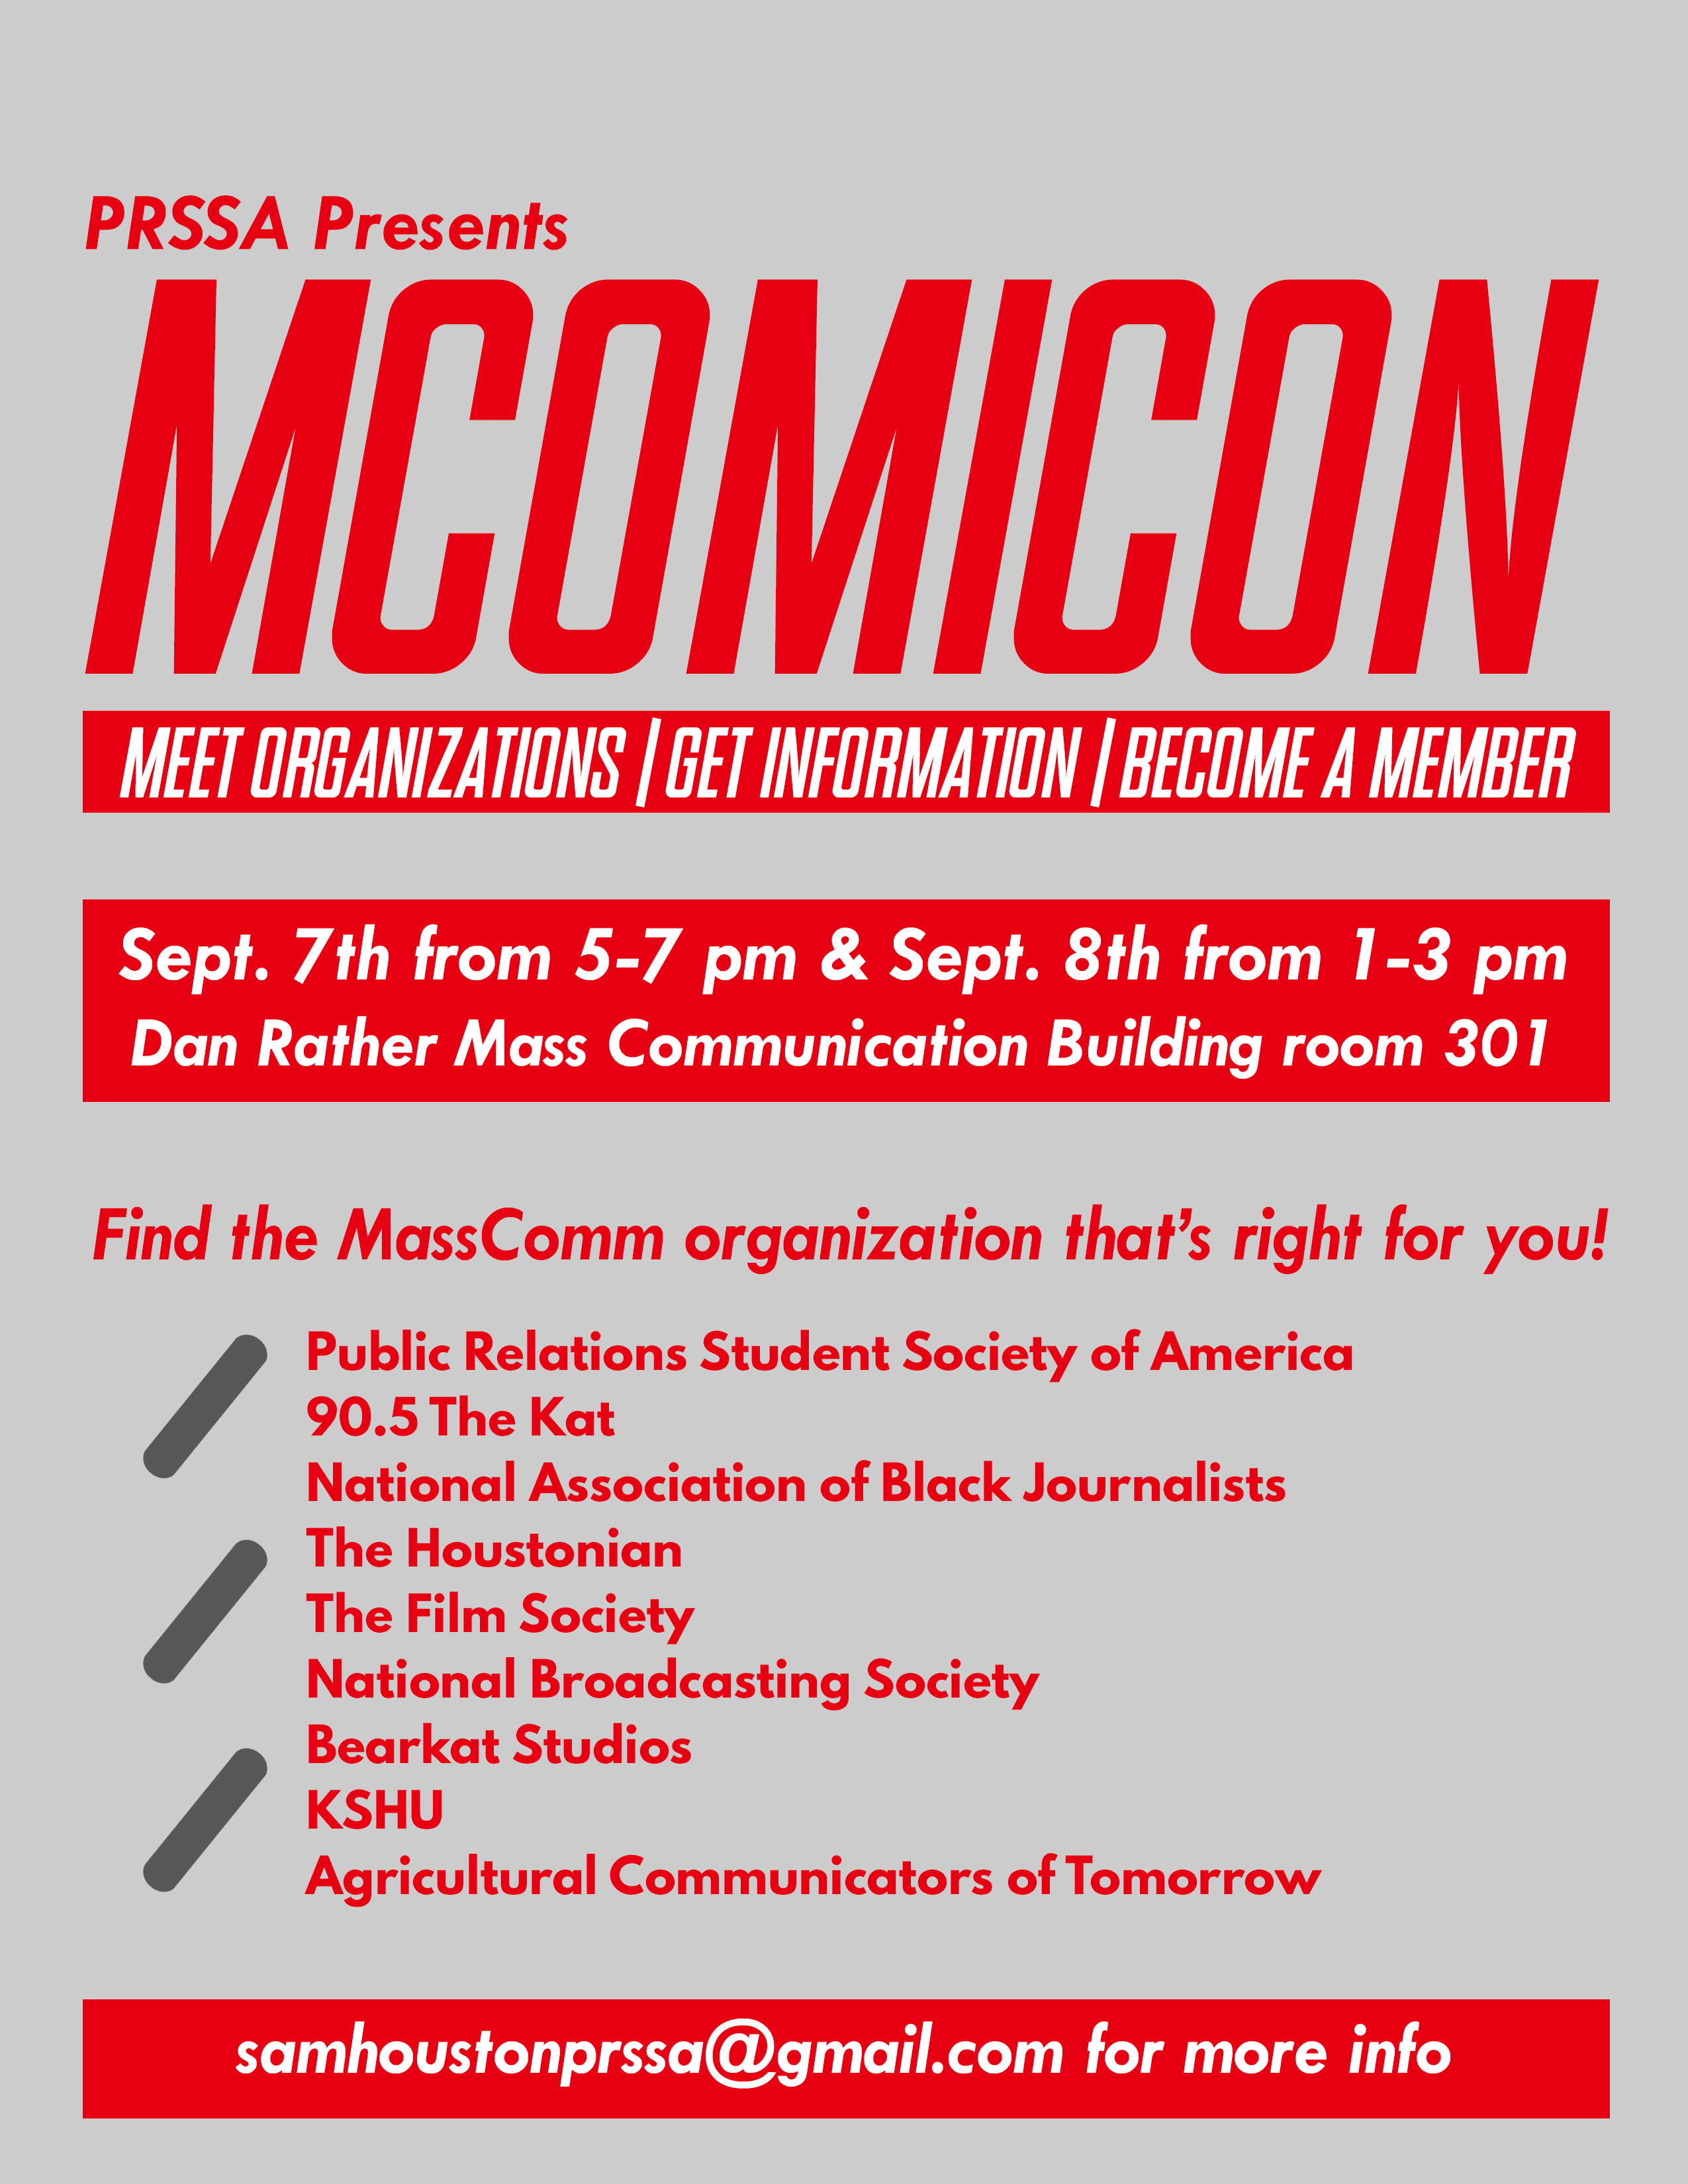 revised mcomicon flyer